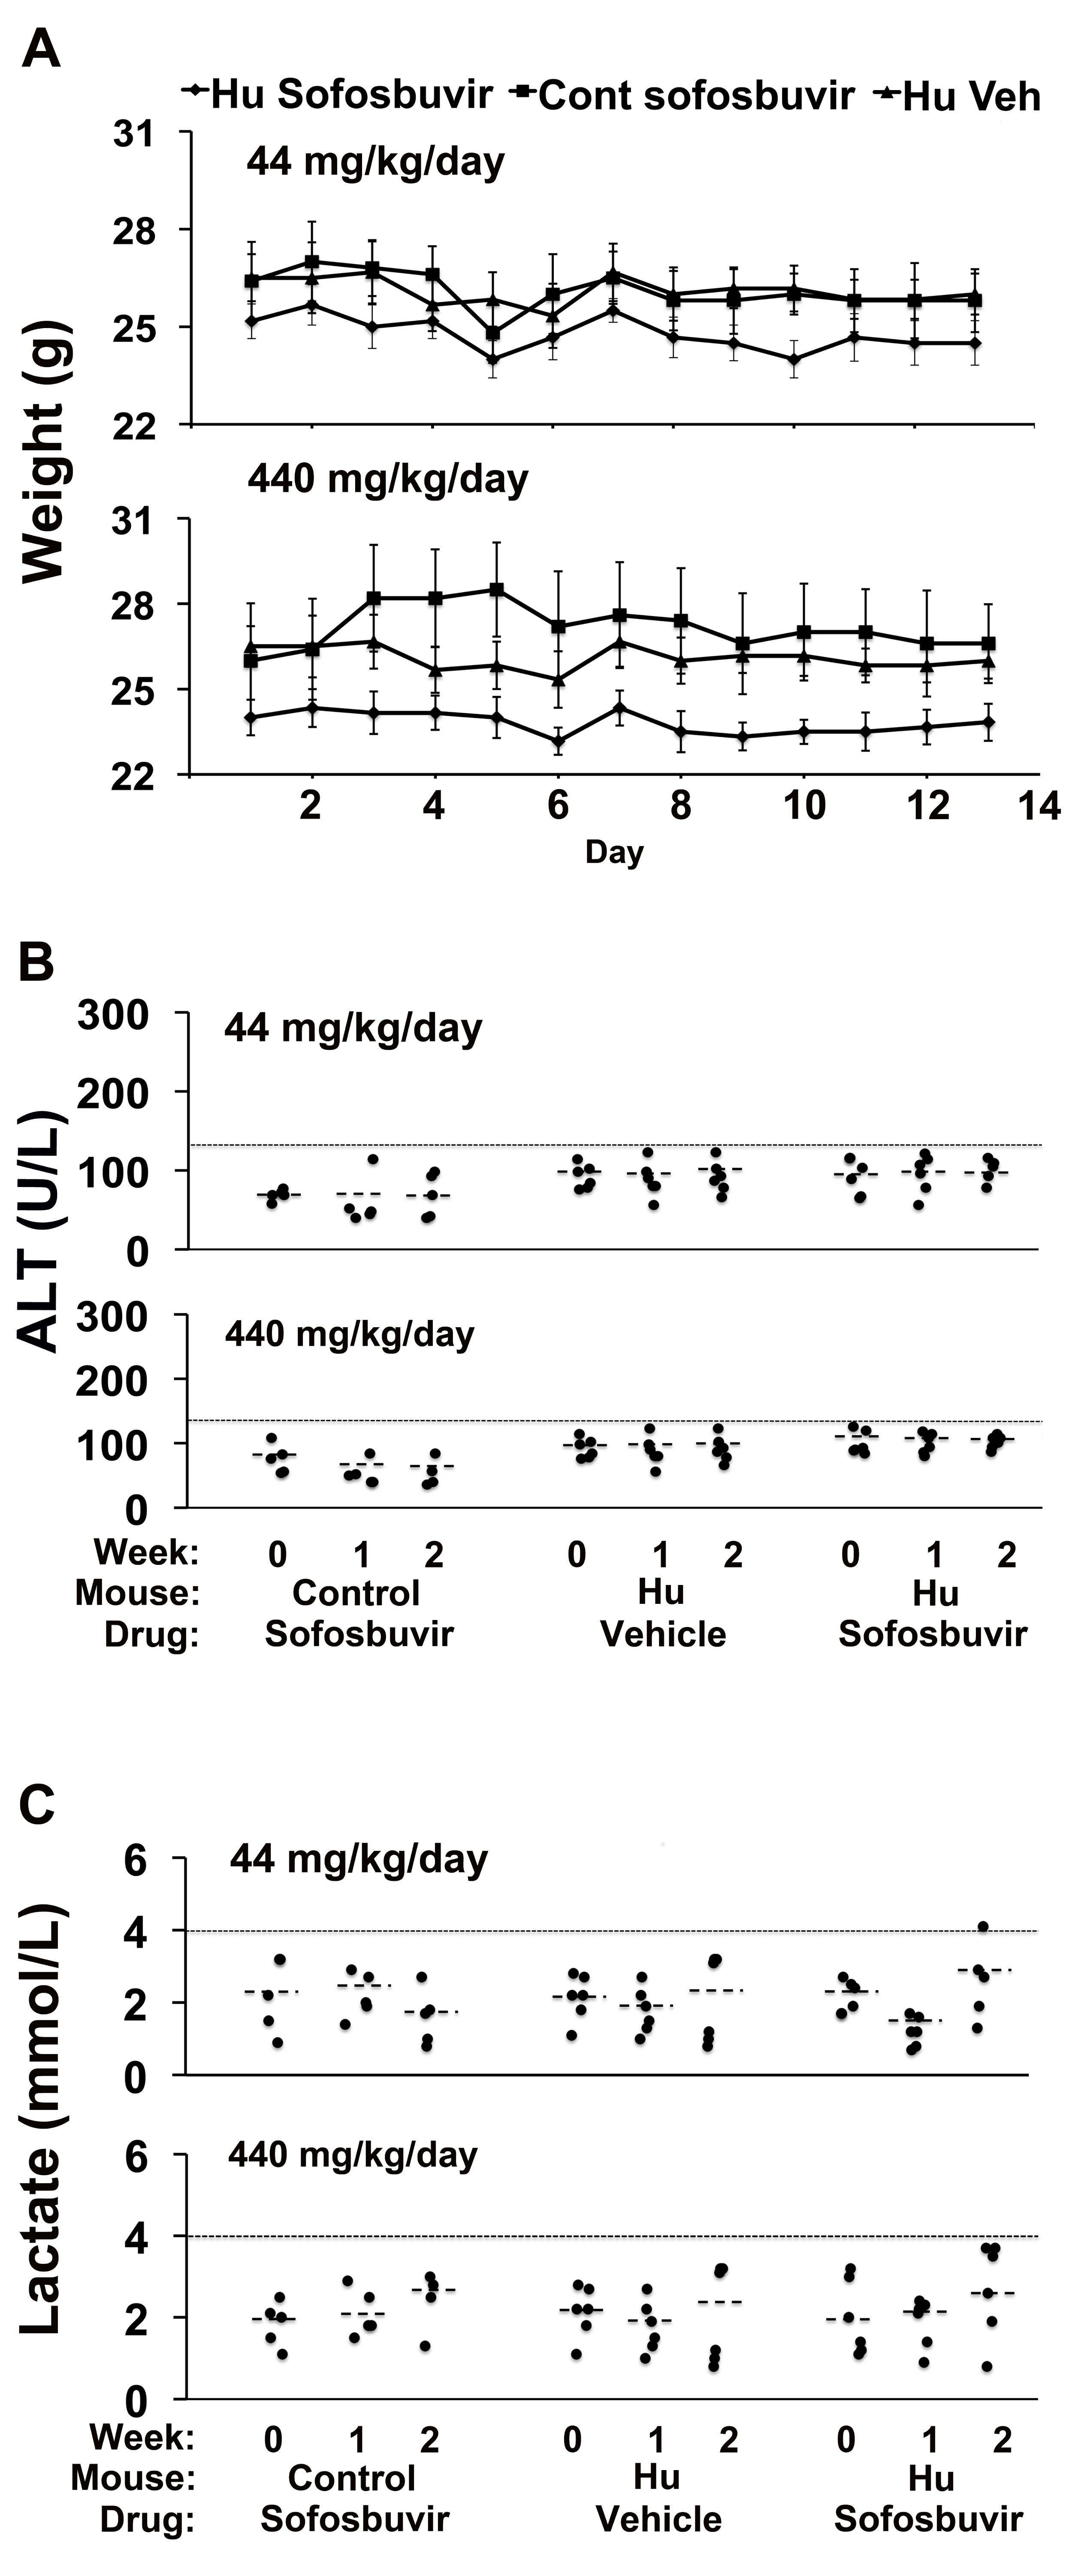 Sofosbuvir does not cause liver toxicity in TK-NOG mice with humanized livers.